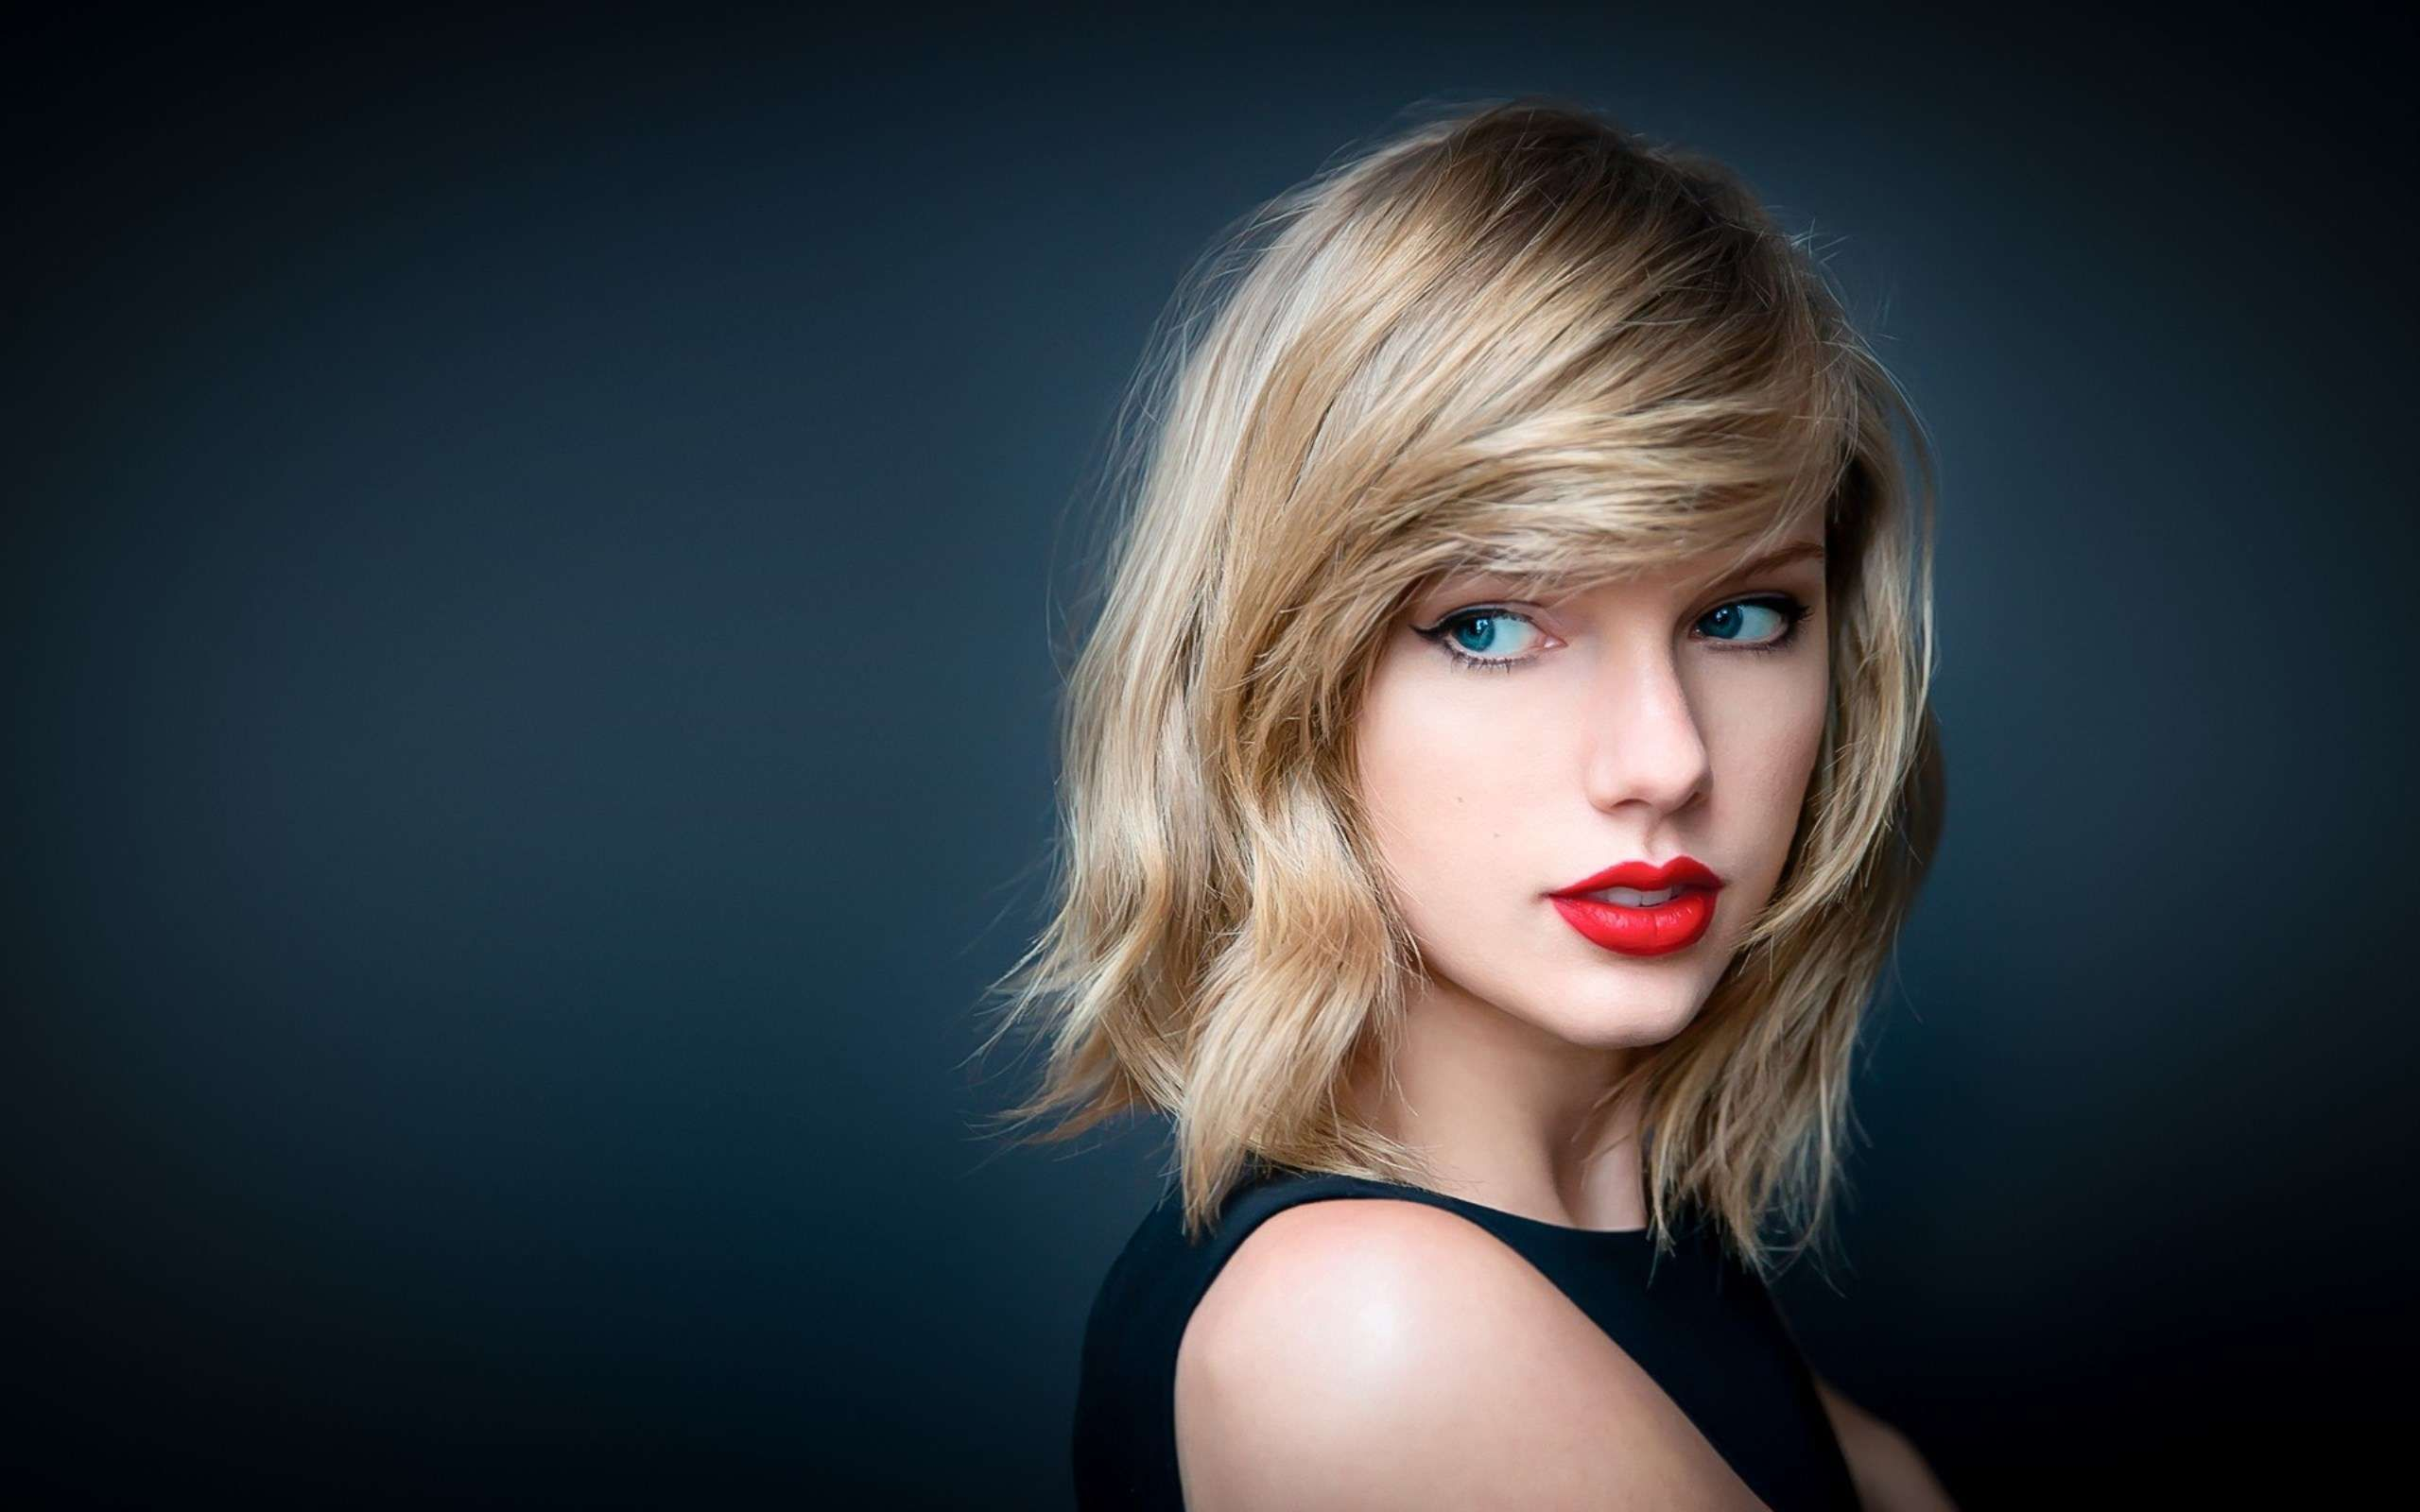 Wallpaper Taylor Swift – Get the Taylor Swift Looks This Season